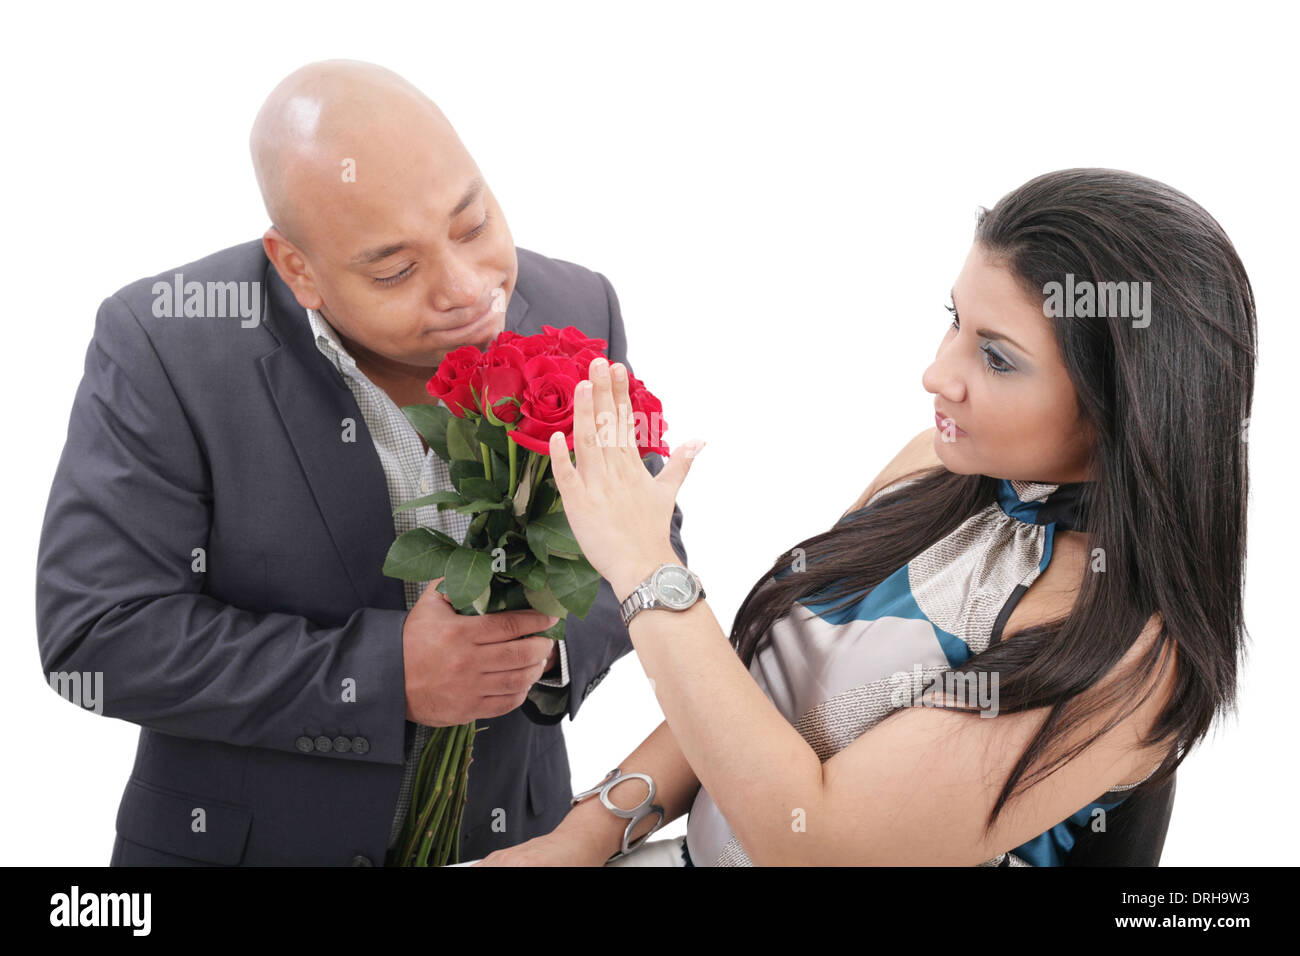 woman refusing apologies from her boyfriend - Stock Image